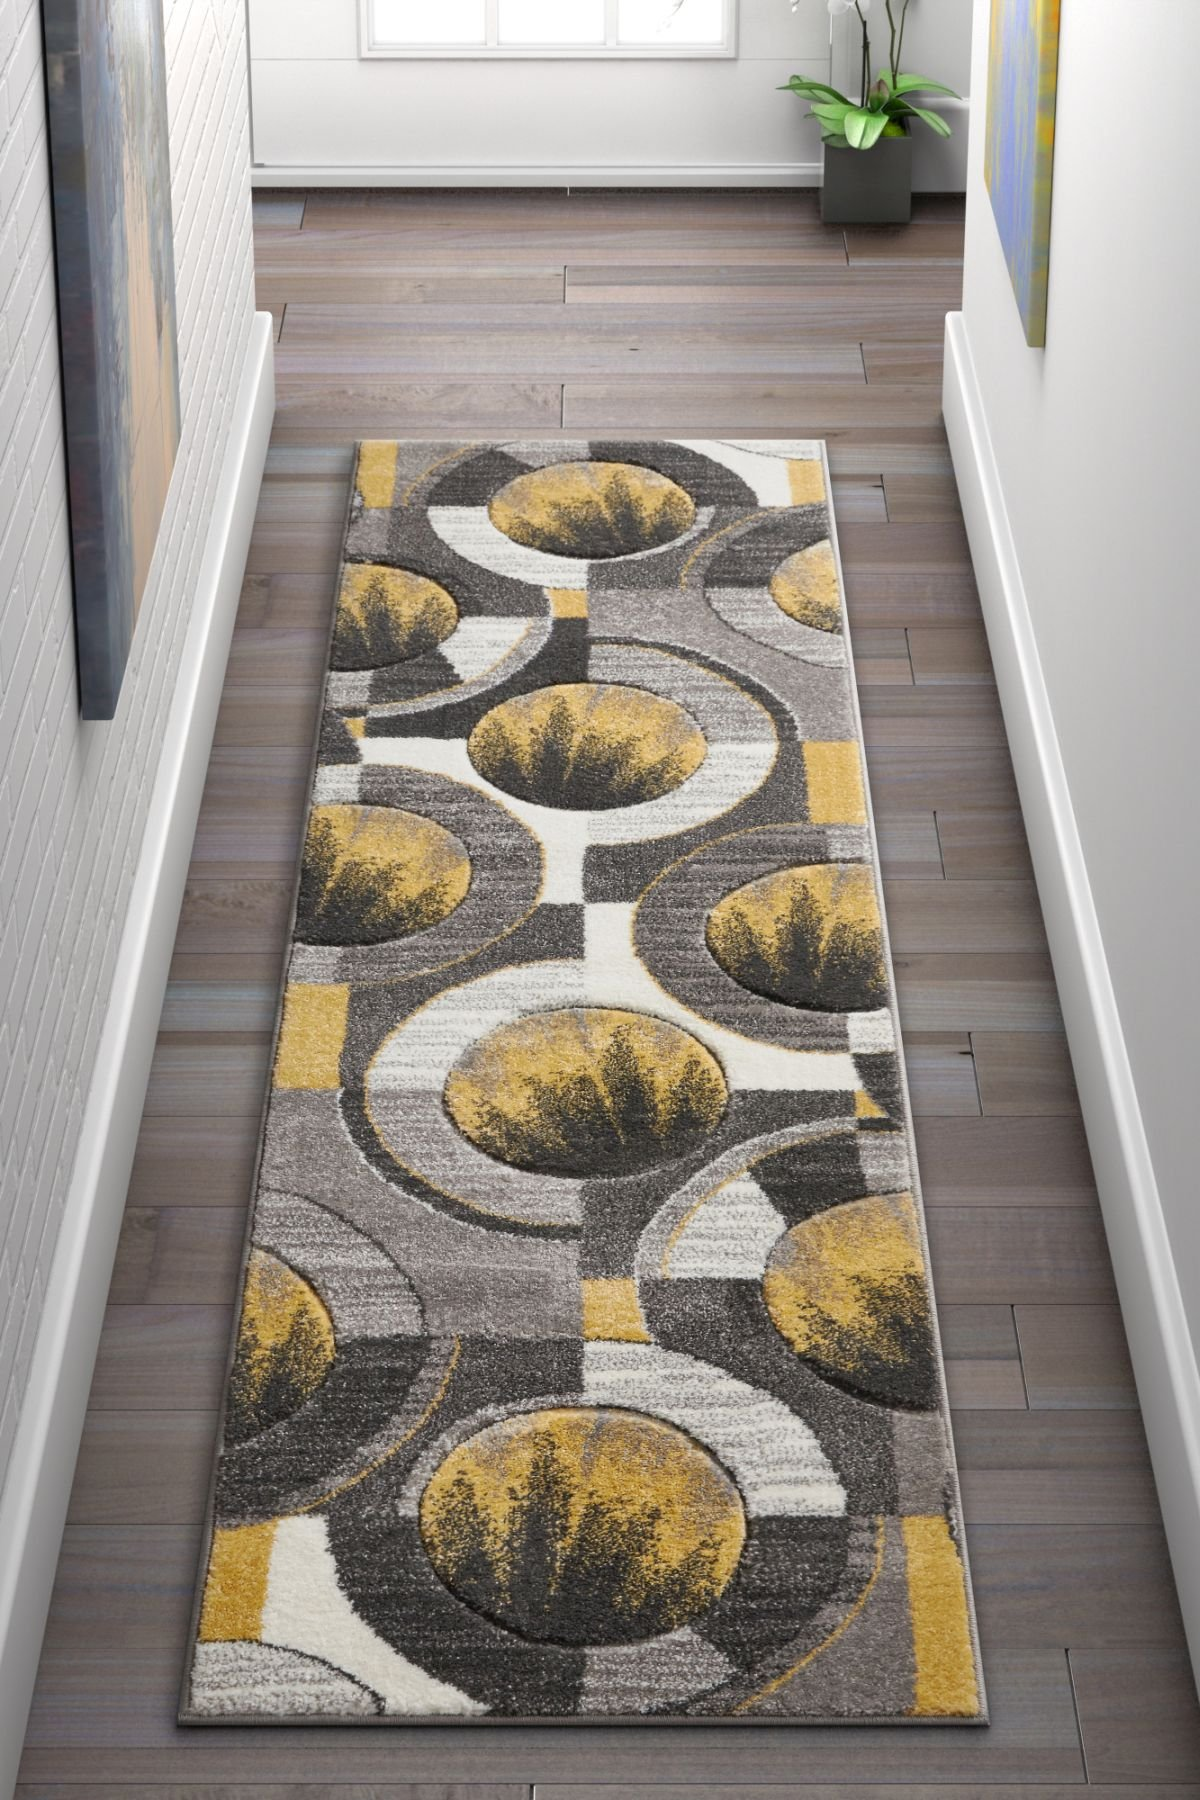 Well Woven Sunburst Blue, Light Gray, Charcoal Modern Geometric Comfy Casual Hand Carved 2x7 (2' x 7' Runner) Area Rug Easy to Clean Stain Fade Resistant Abstract Contemporary Thick Soft Plush